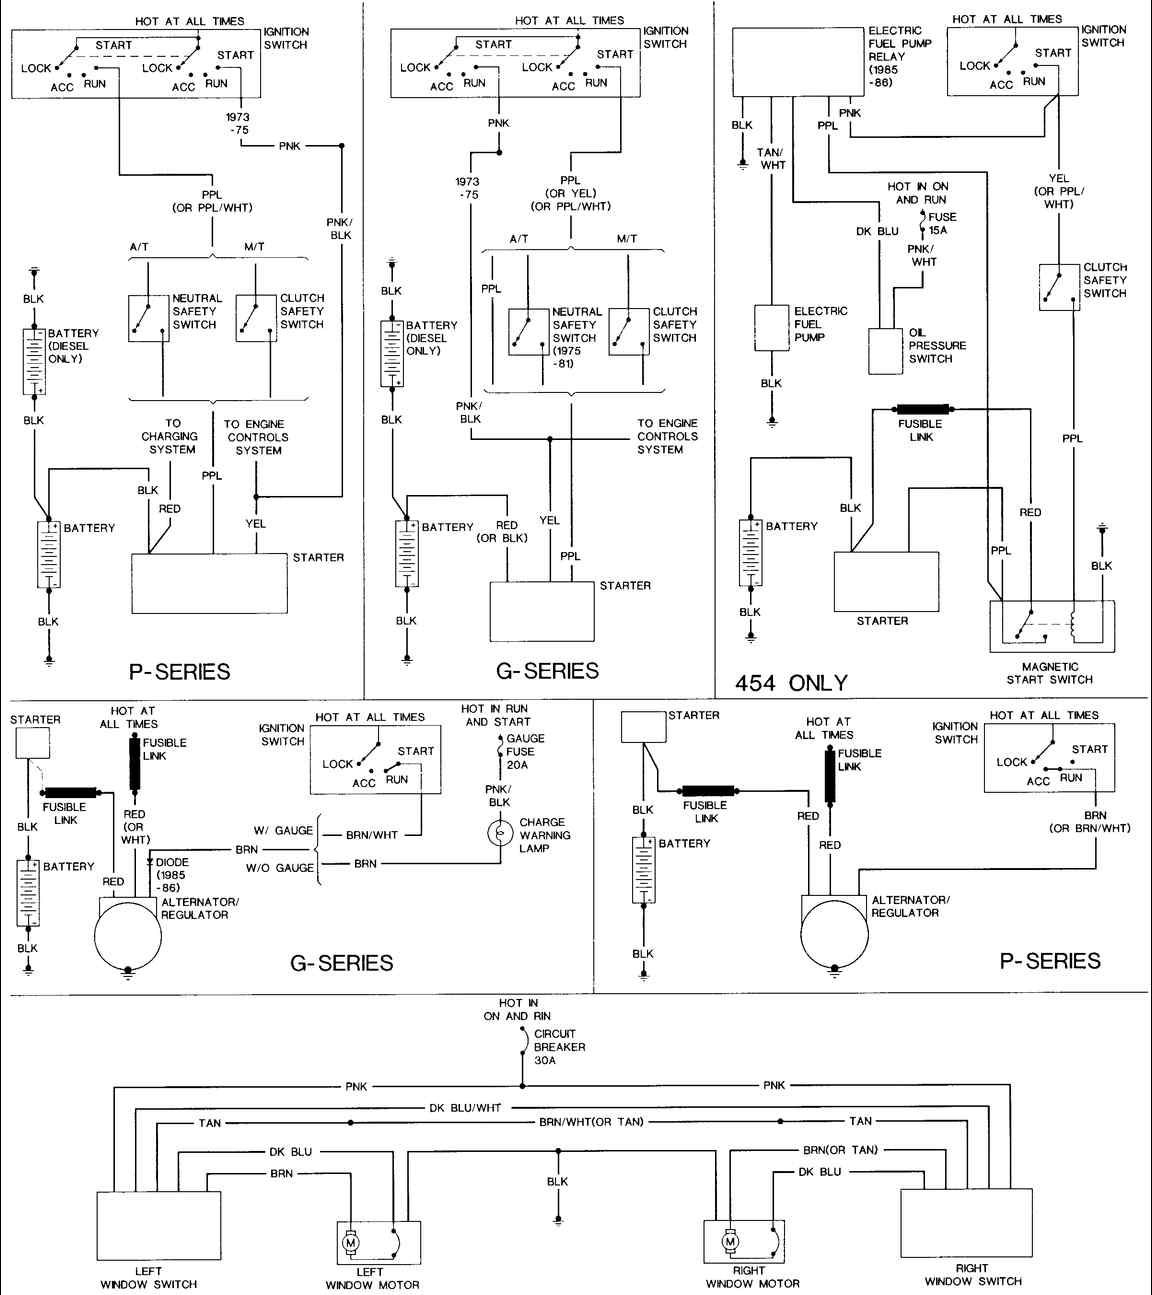 85 chevrolet steering column wiring diagram wiring diagram third level 1956 chevy steering column wiring diagram 85 chevy truck wiring diagram 85 chevy van the steering column 1991 chevy steering column diagram 85 chevrolet steering column wiring diagram